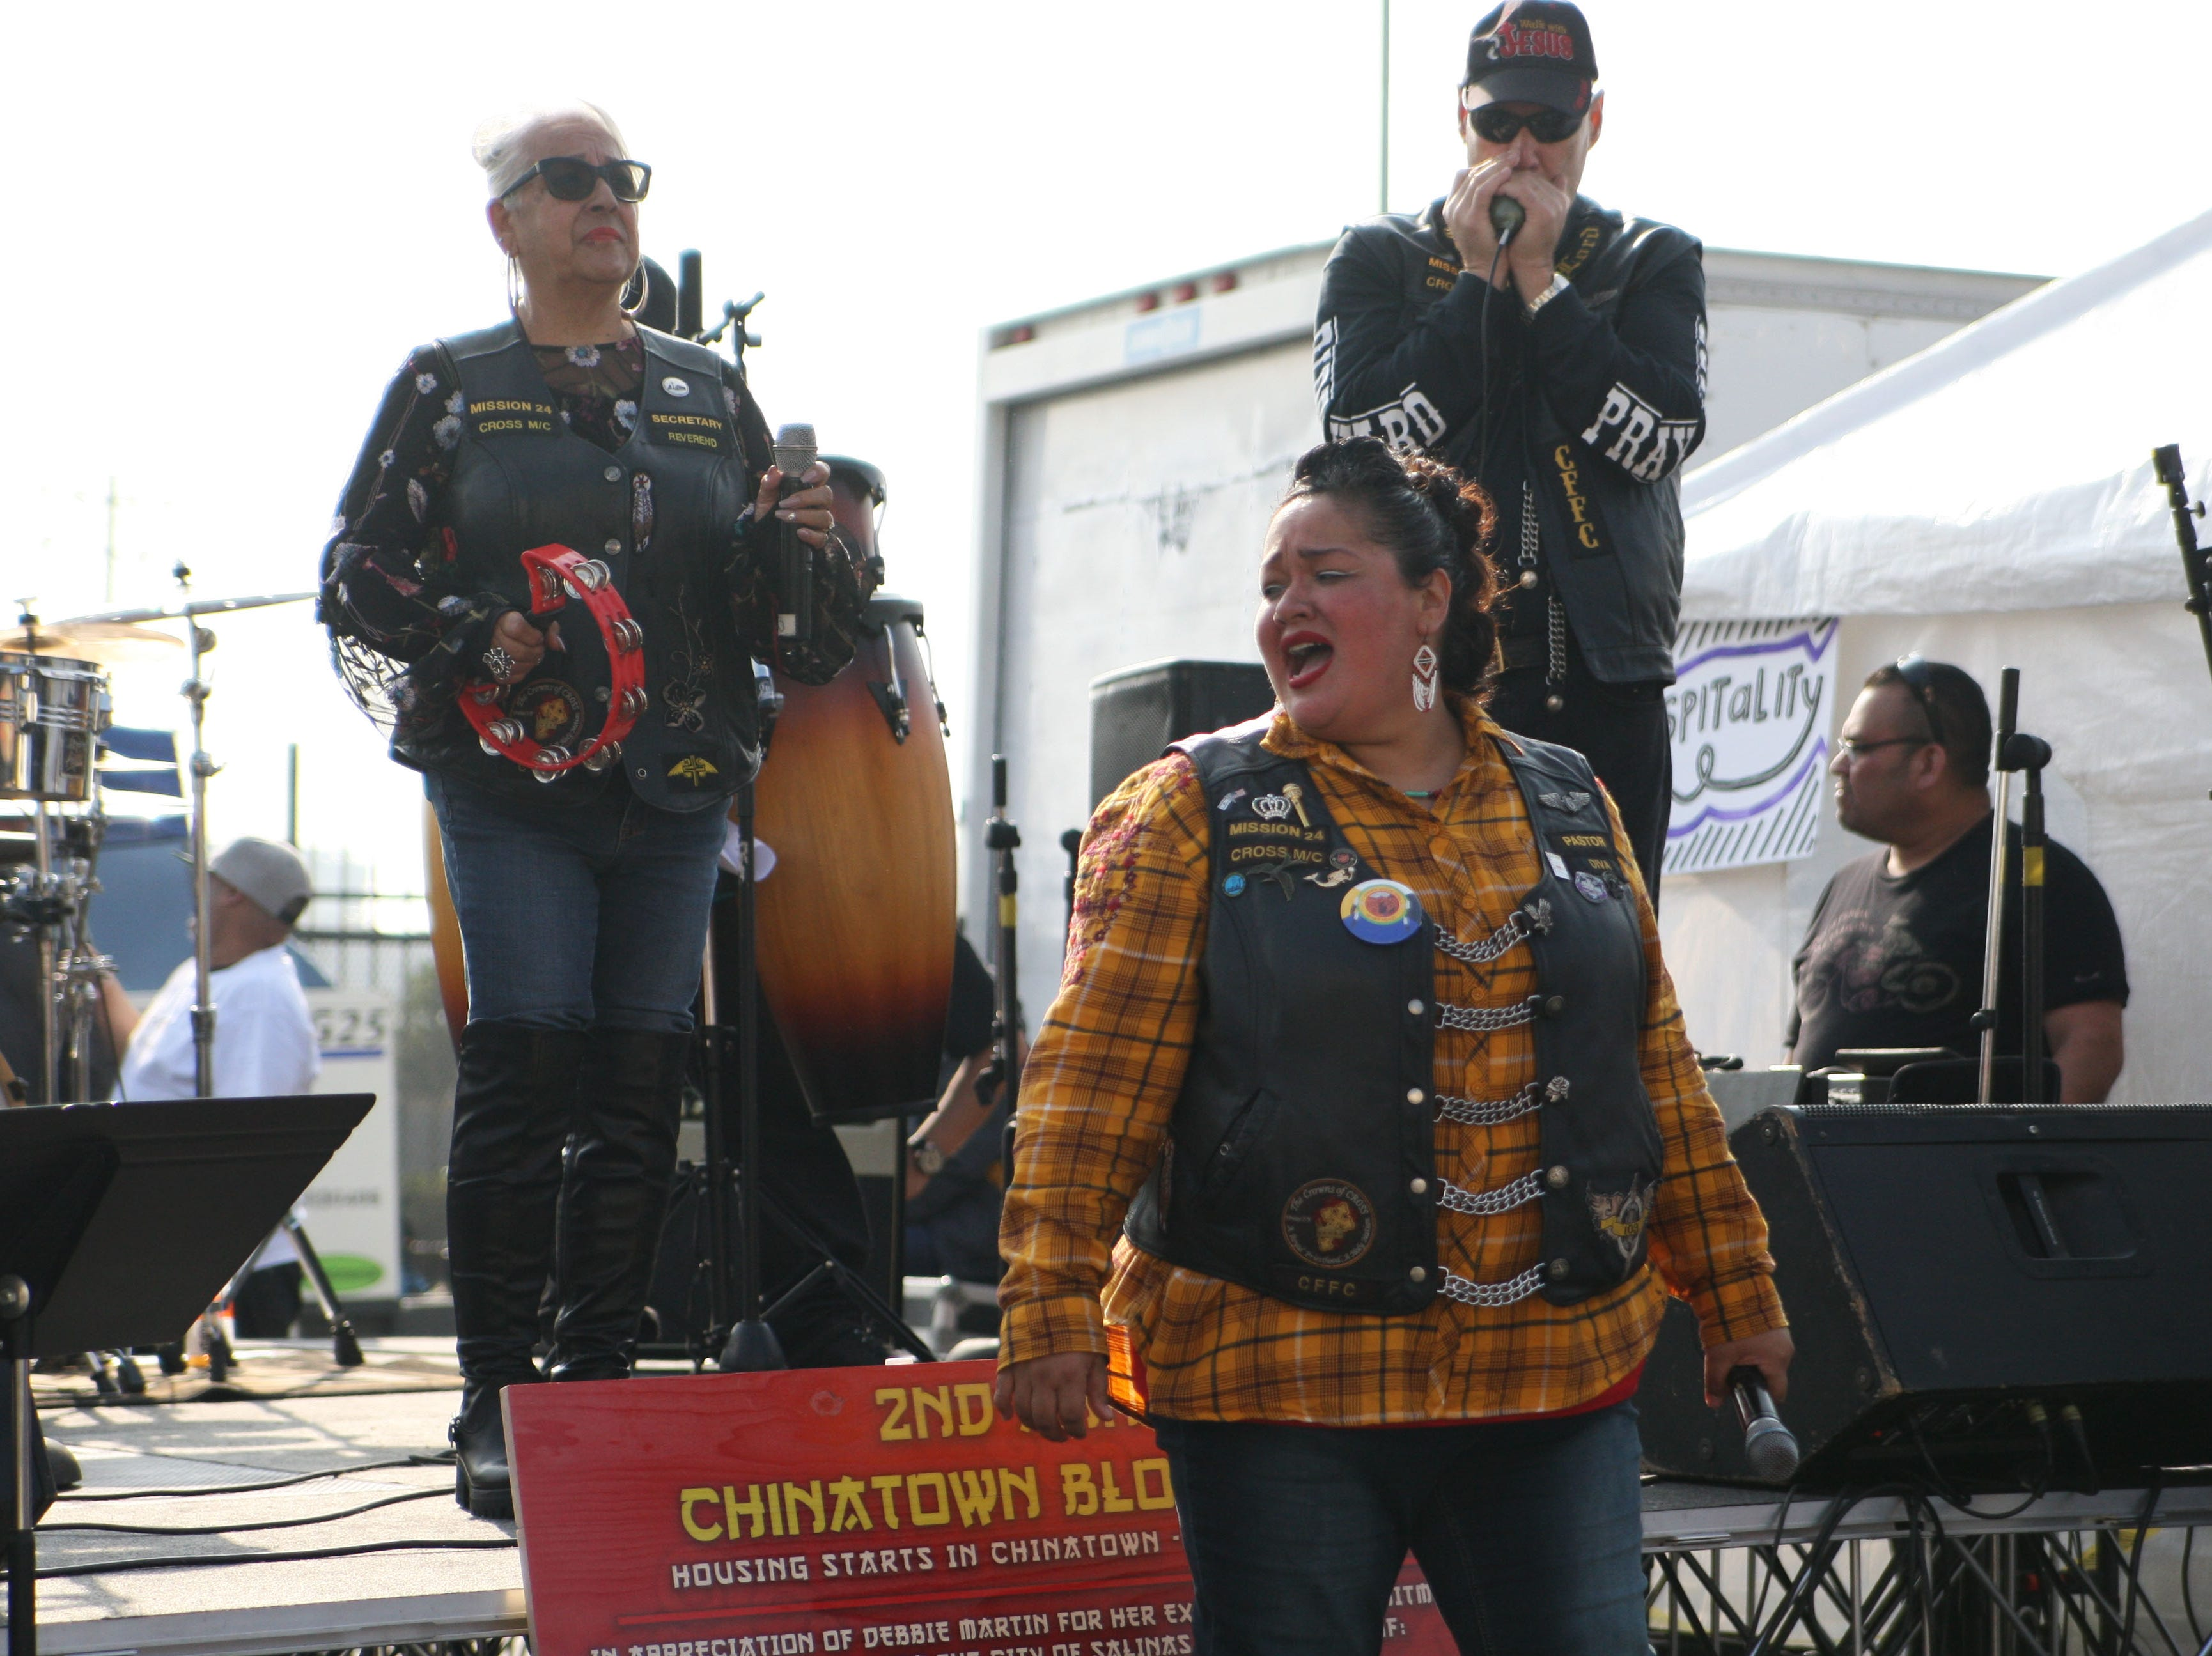 Members of the Cross Motorcycle Ministry band performed for the crowd at Chinatown's second annual block party.